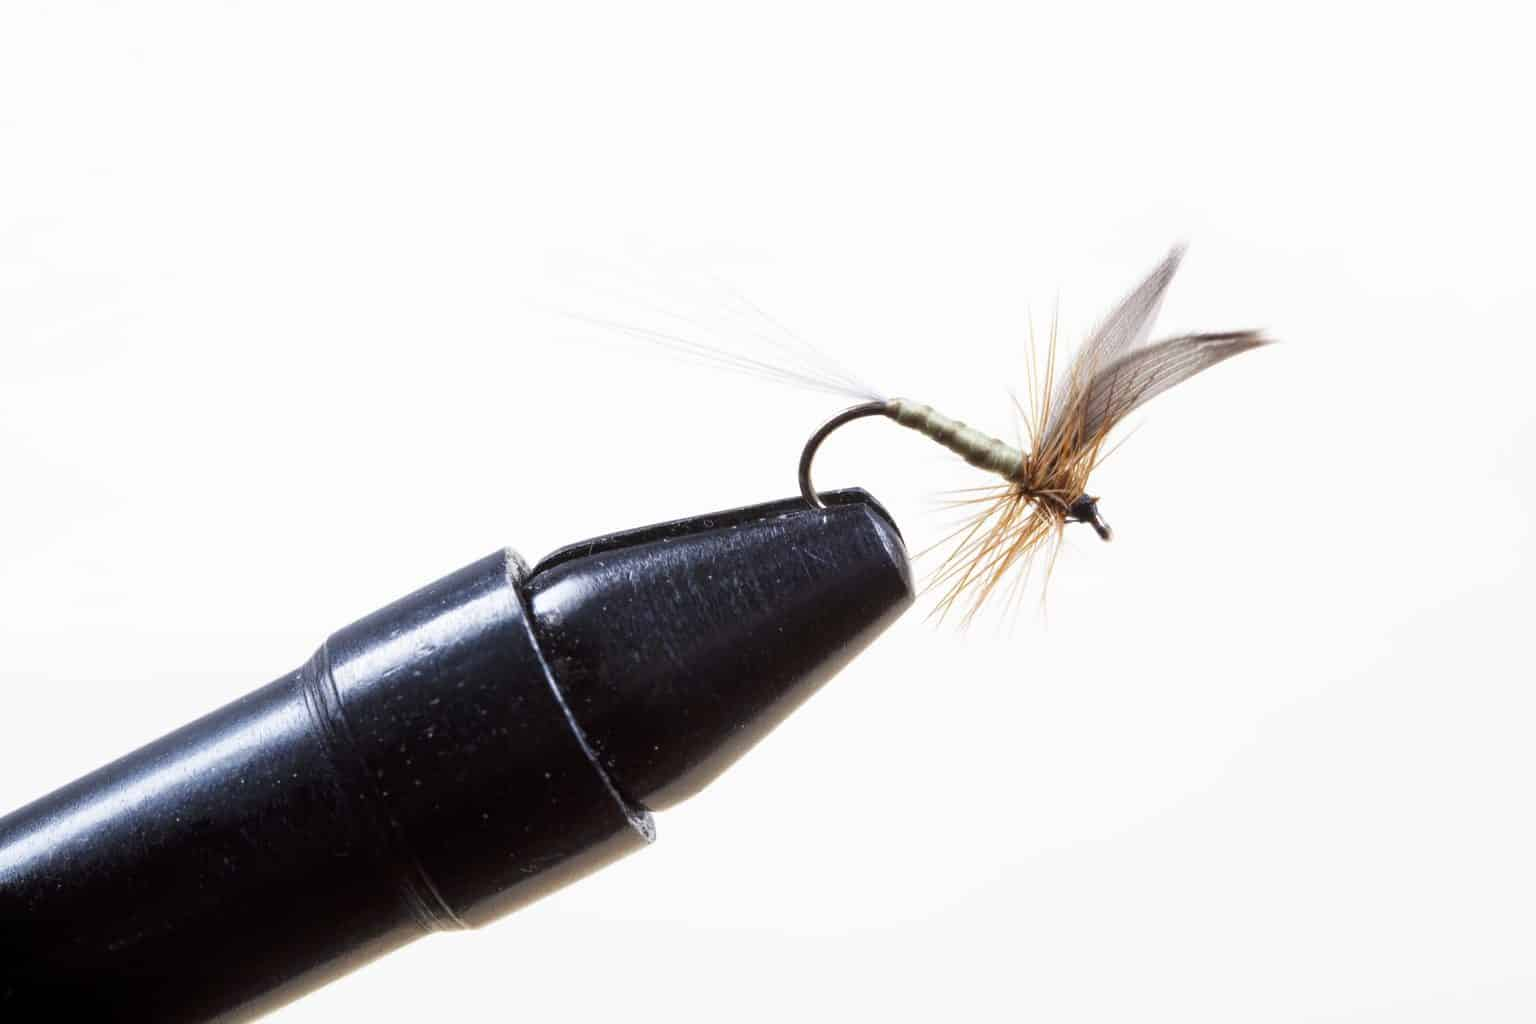 In the best fly tying books you will learn how to tie a fly like this